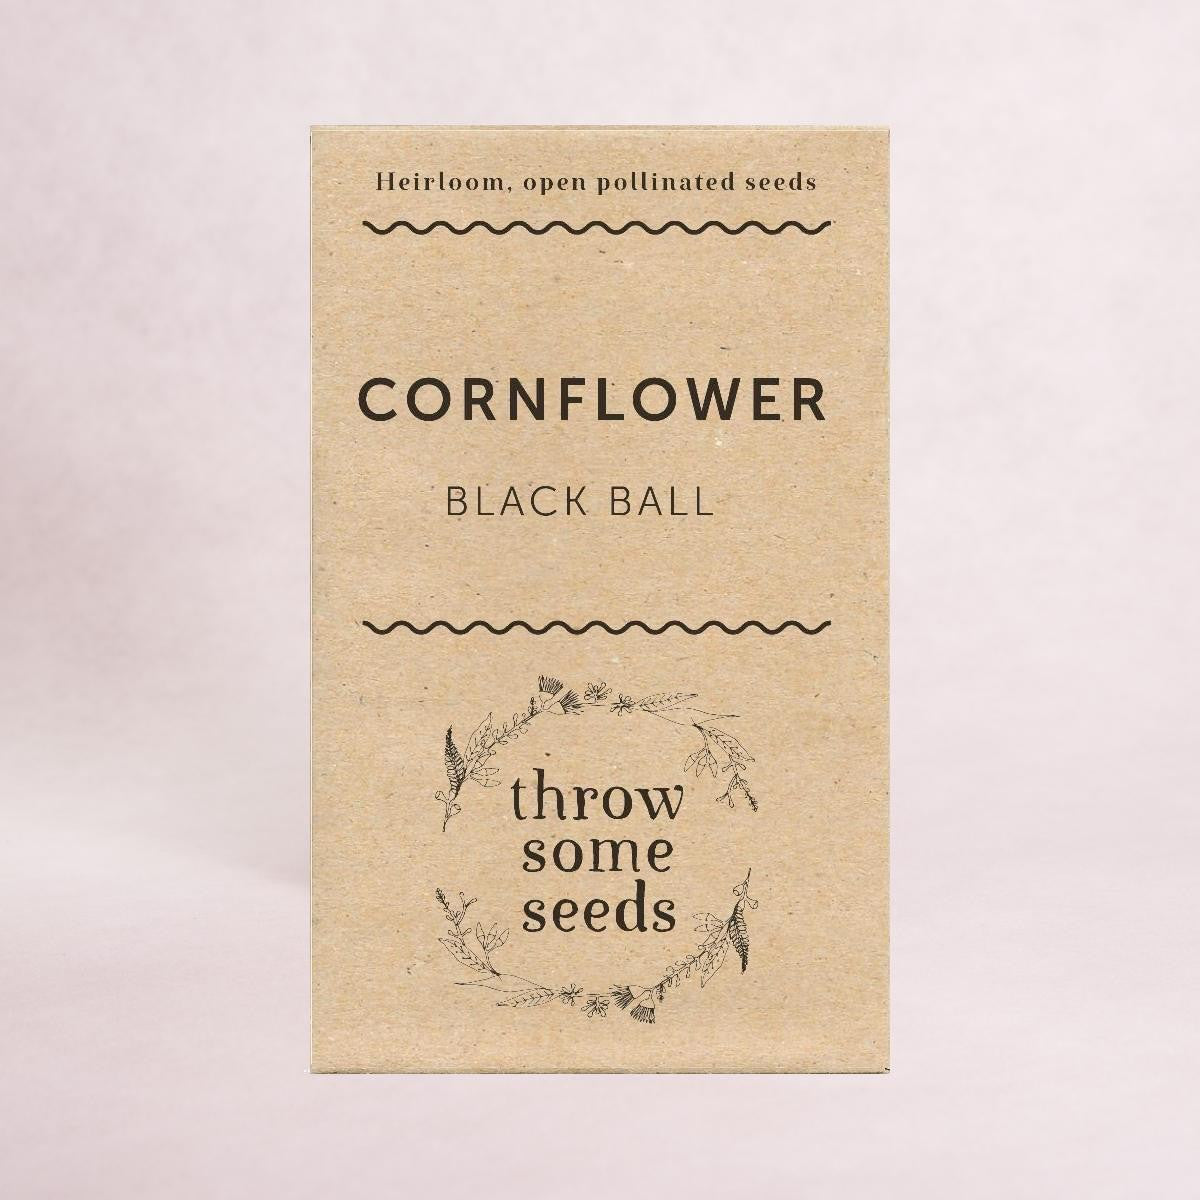 Cornflower (Black Ball) Seeds - Seeds - Throw Some Seeds - Australian gardening gifts and eco products online!